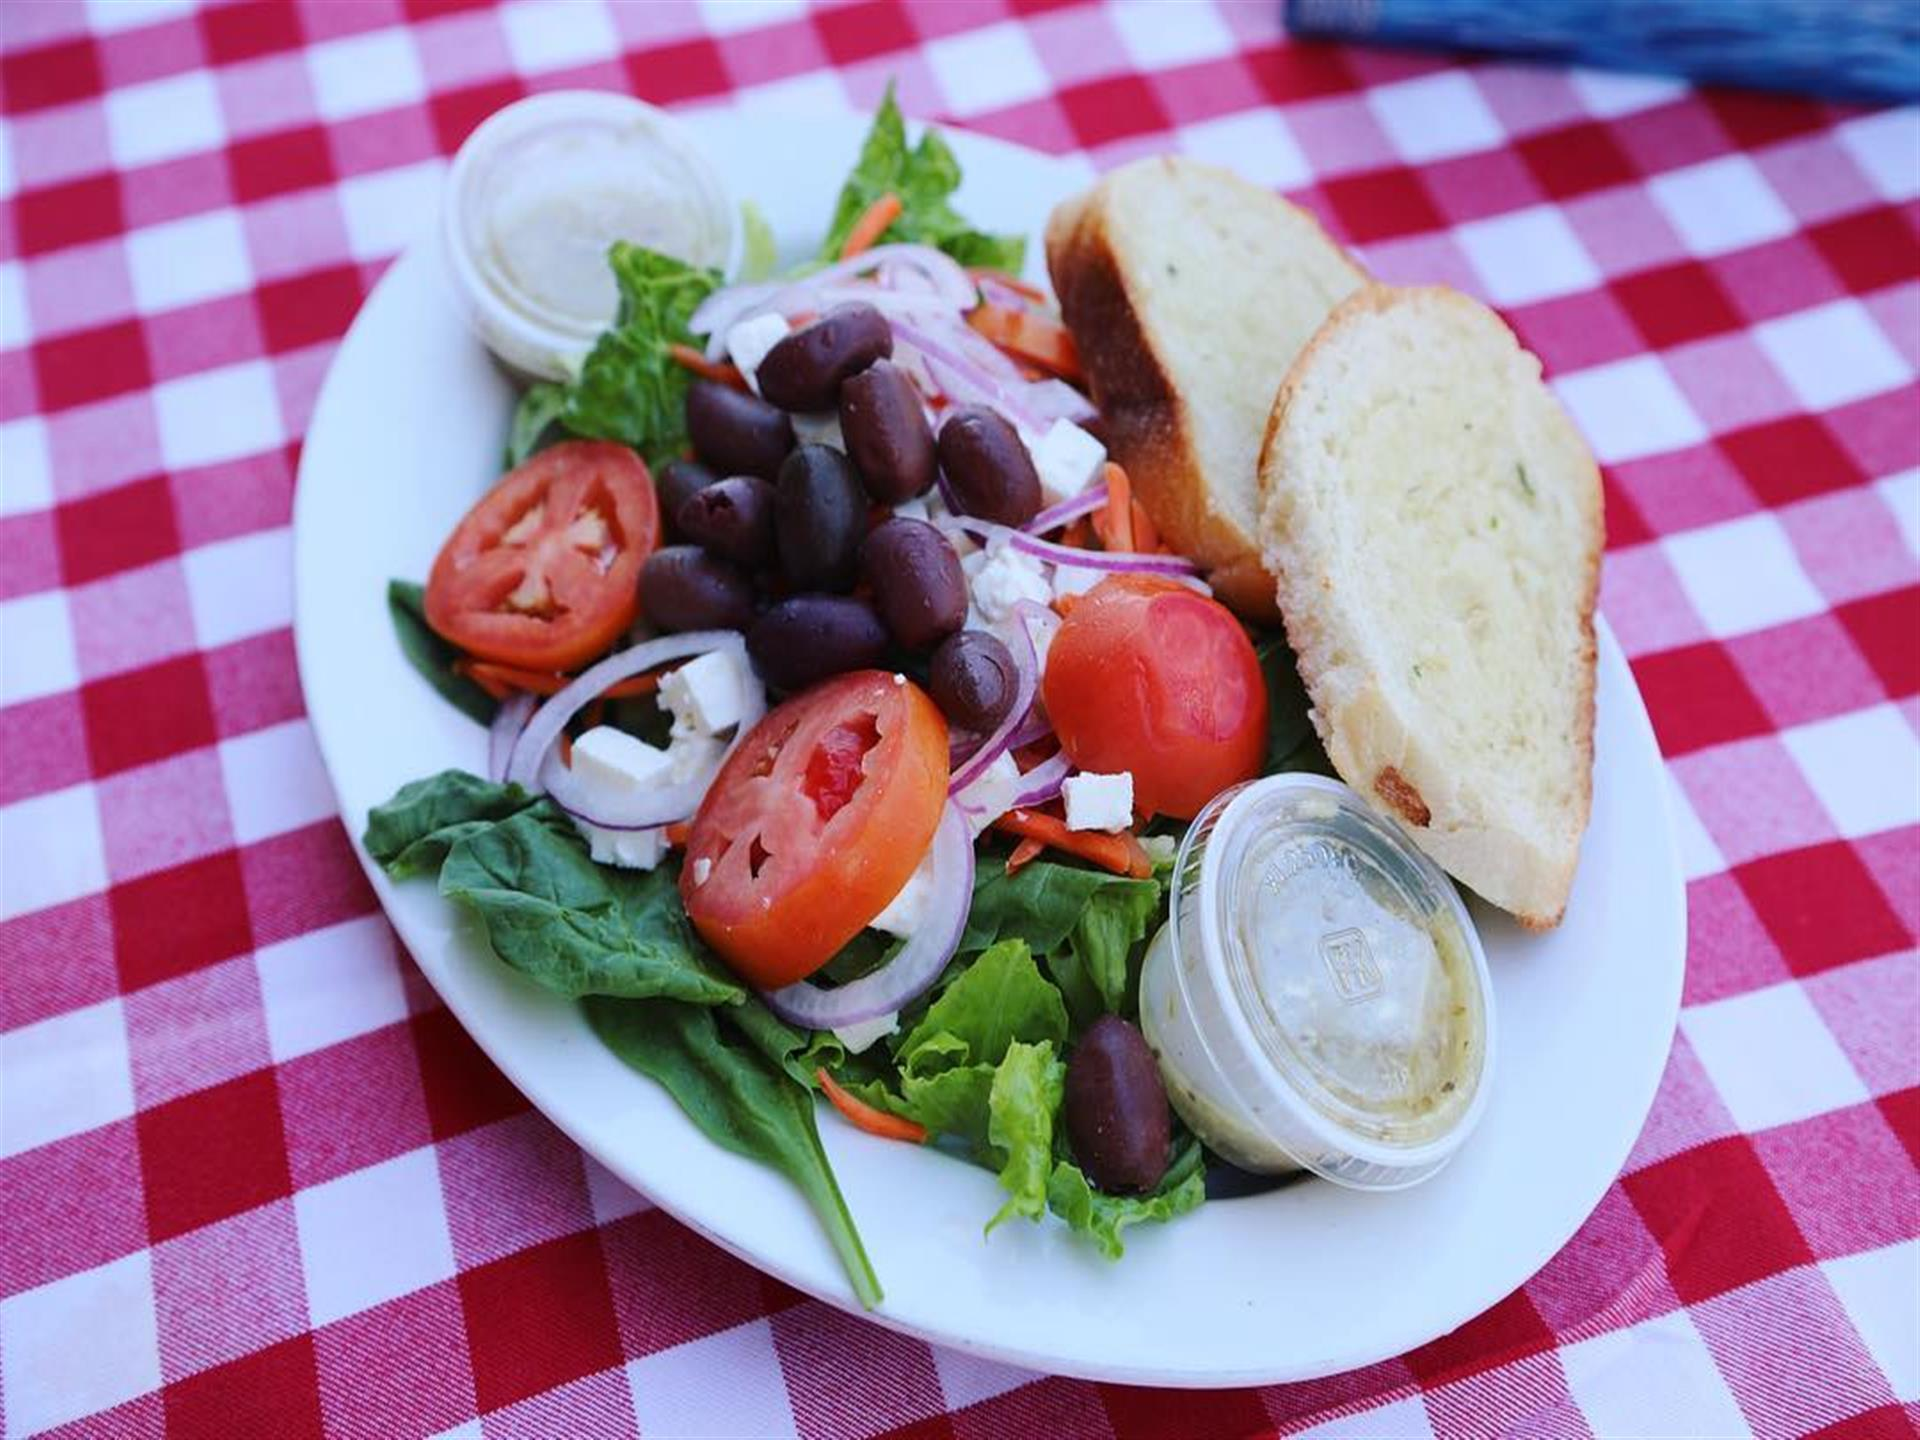 Salad with feta cheese, tomatoes, olives, side of dressing and bread.